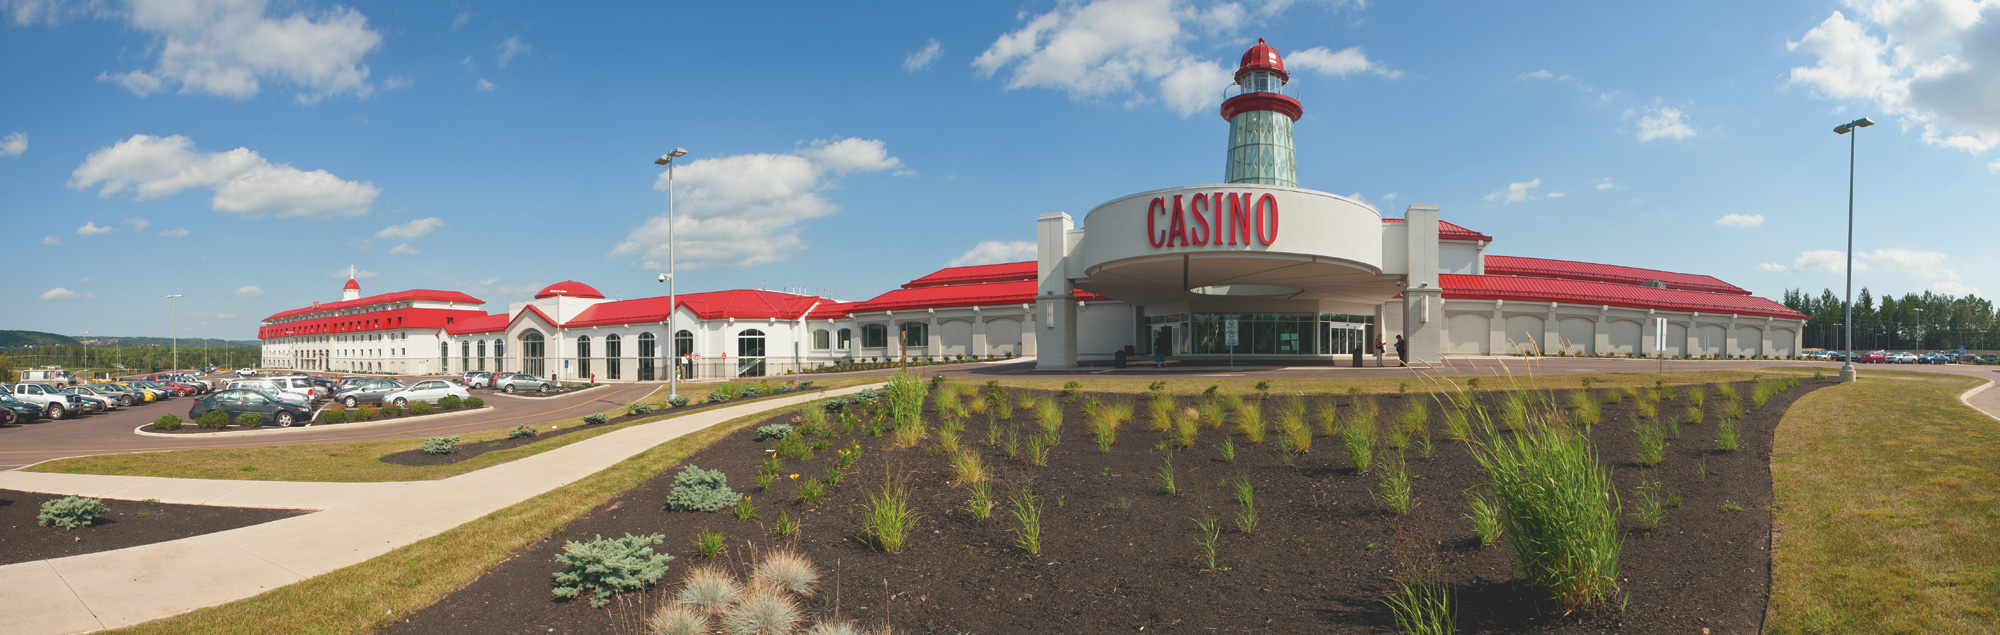 Casino nb spa